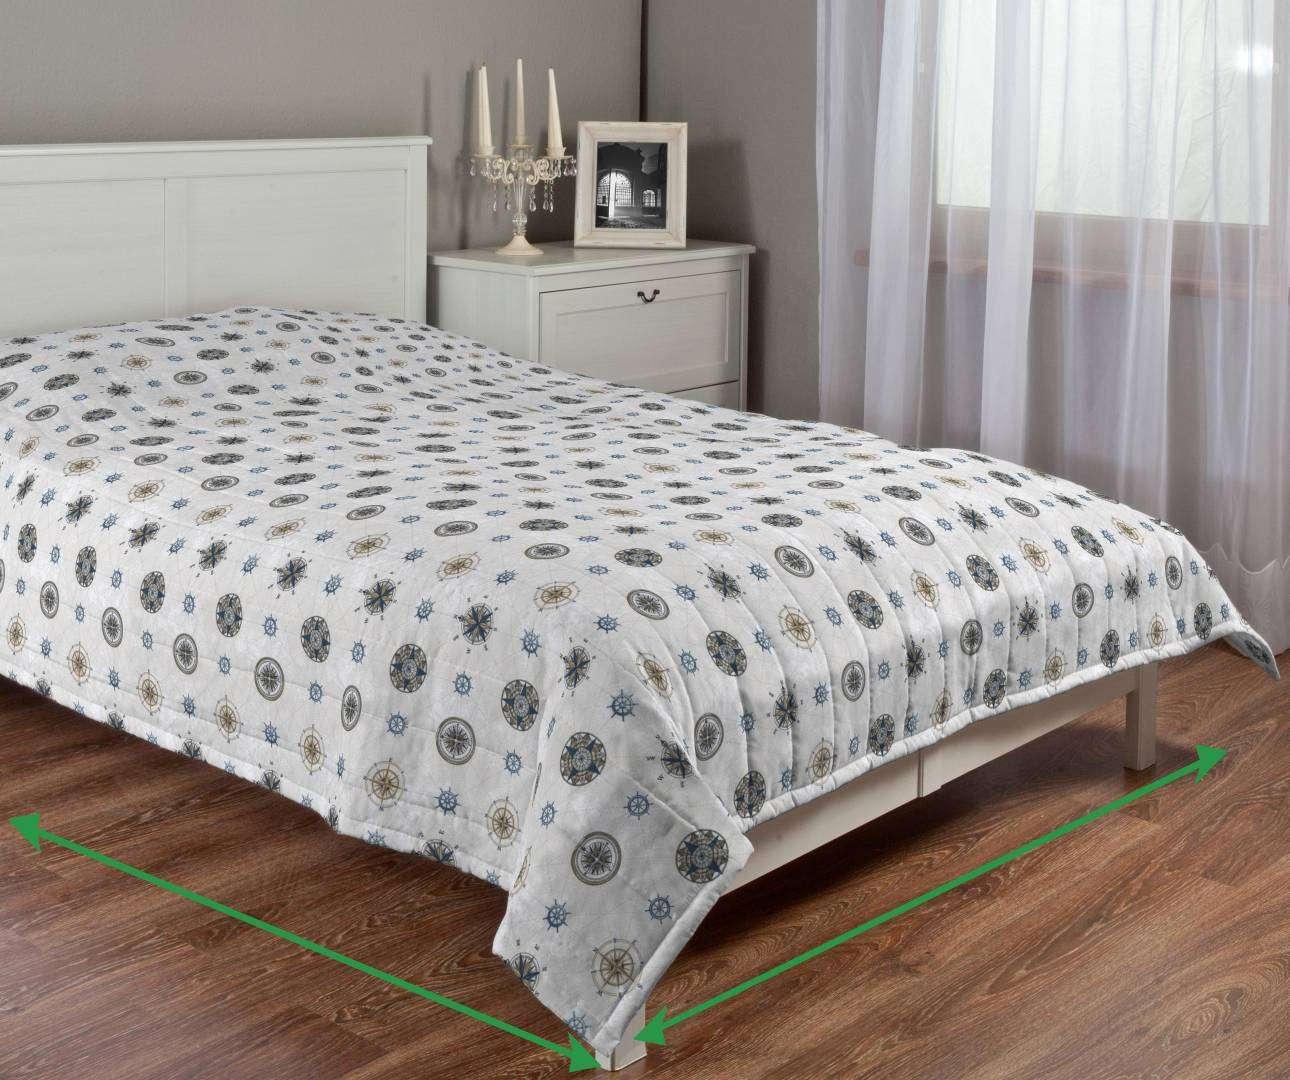 Quilted throw (vertical quilt pattern) in collection Freestyle, fabric: 137-63